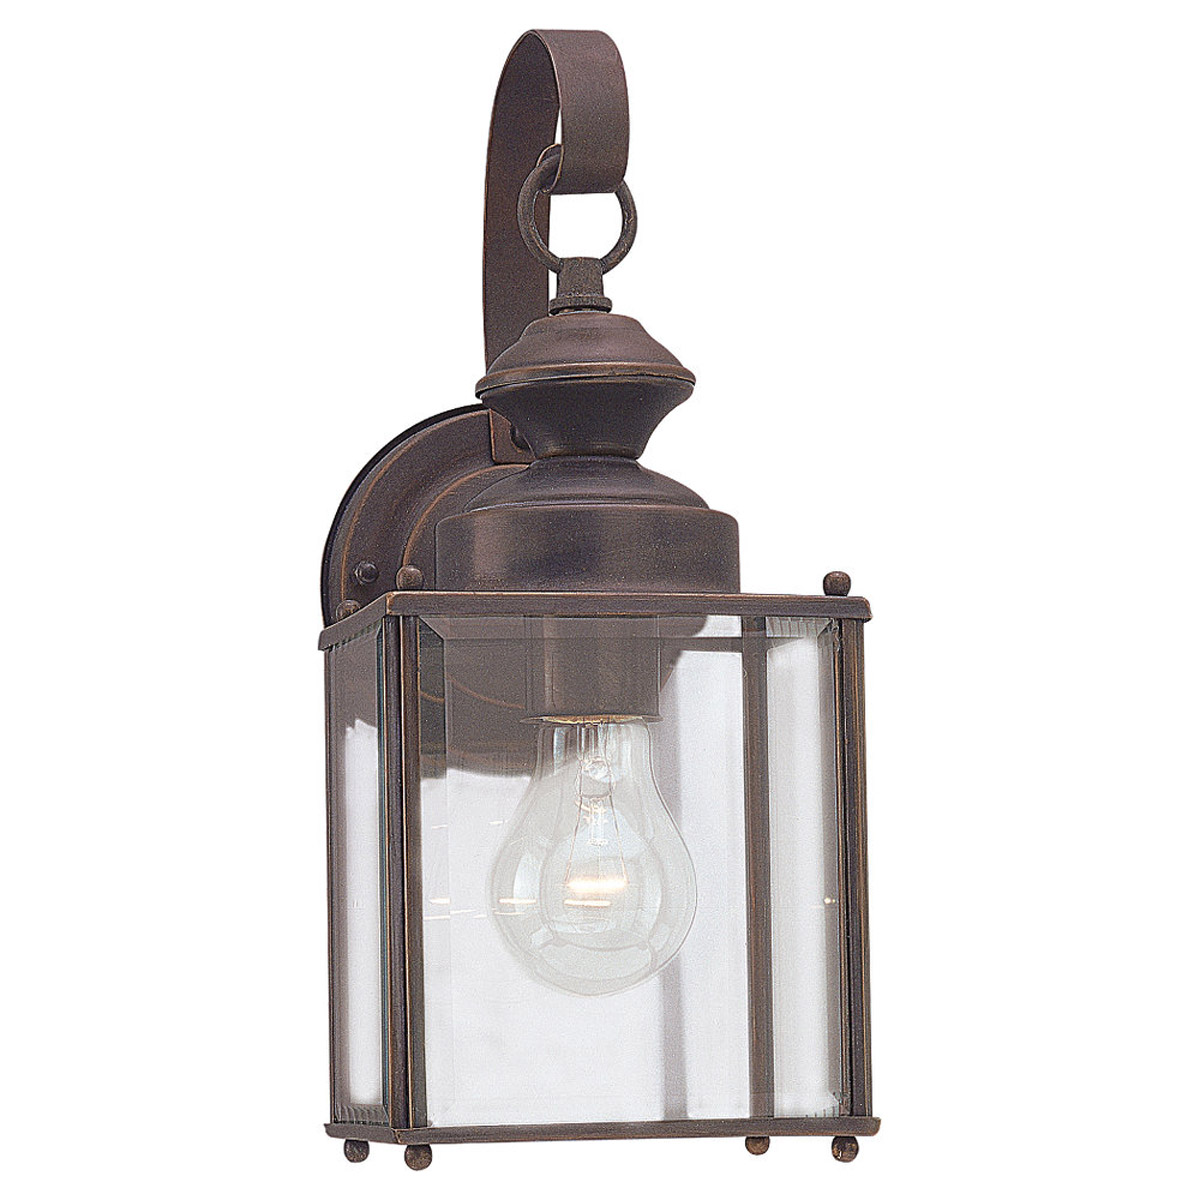 Sea Gull Lighting Jamestowne 1 Light Outdoor Wall Lantern in Antique Bronze 8457-71